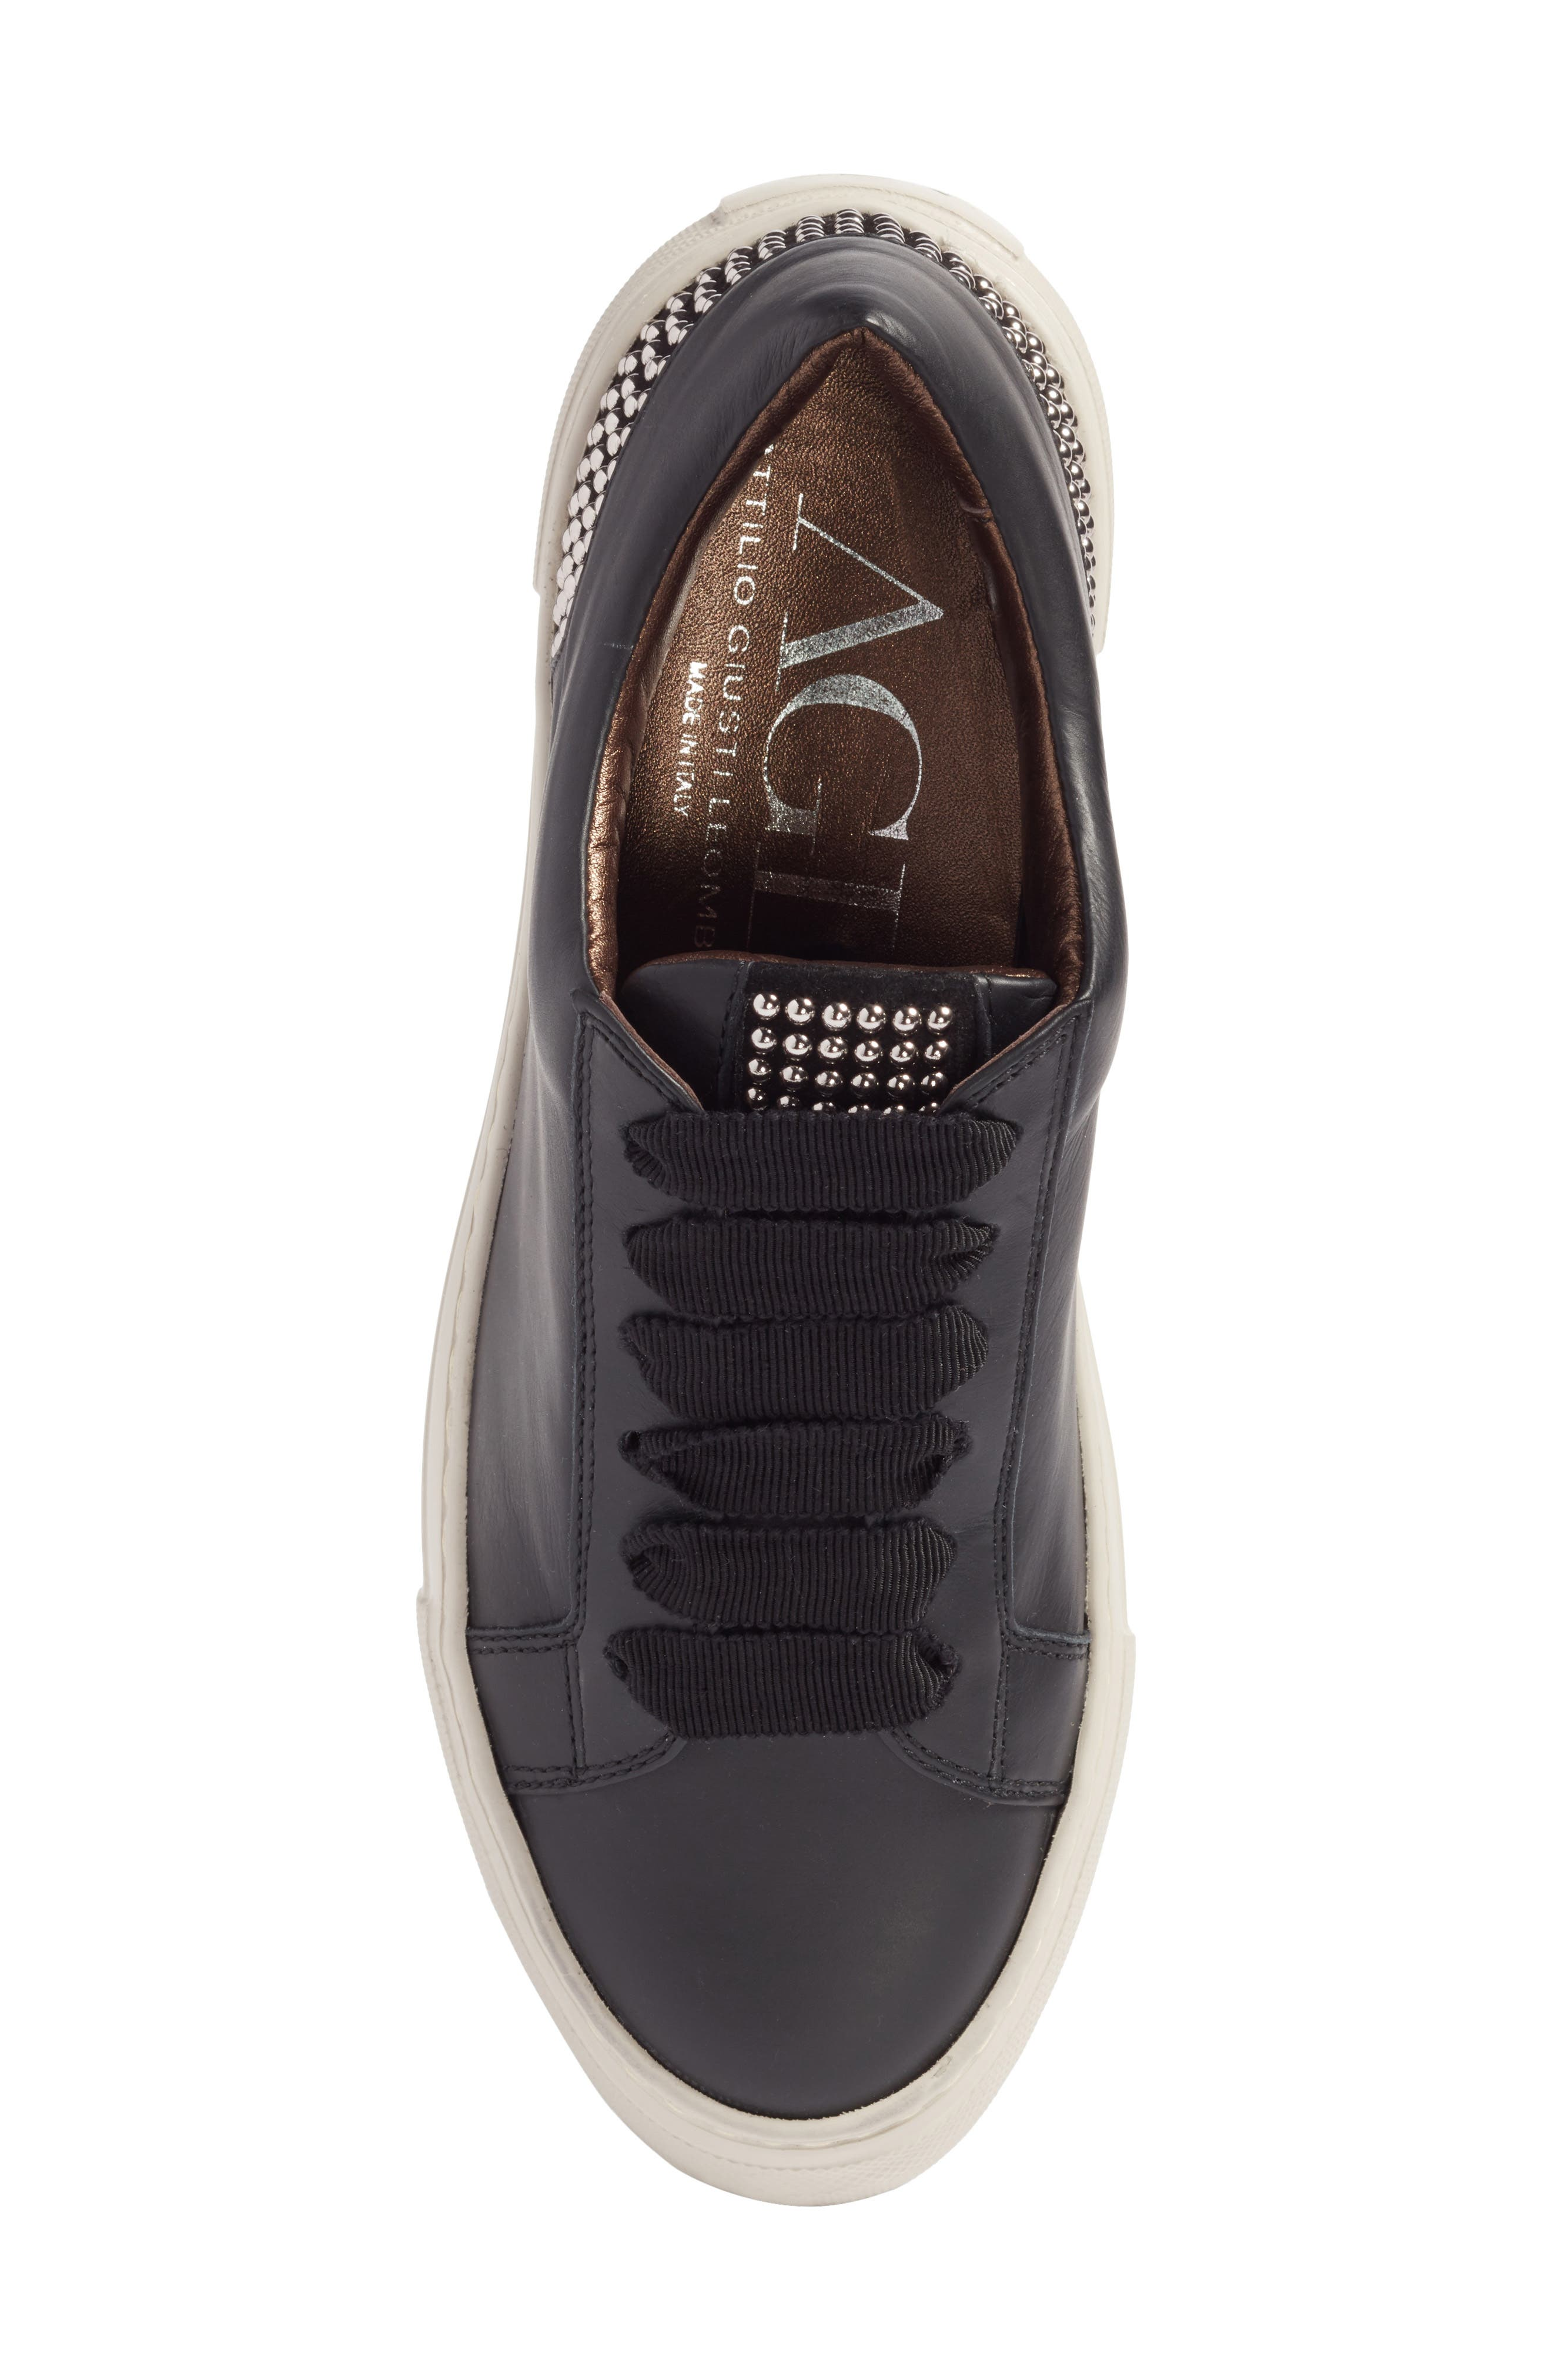 Pearl Sneaker,                             Alternate thumbnail 5, color,                             BLACK